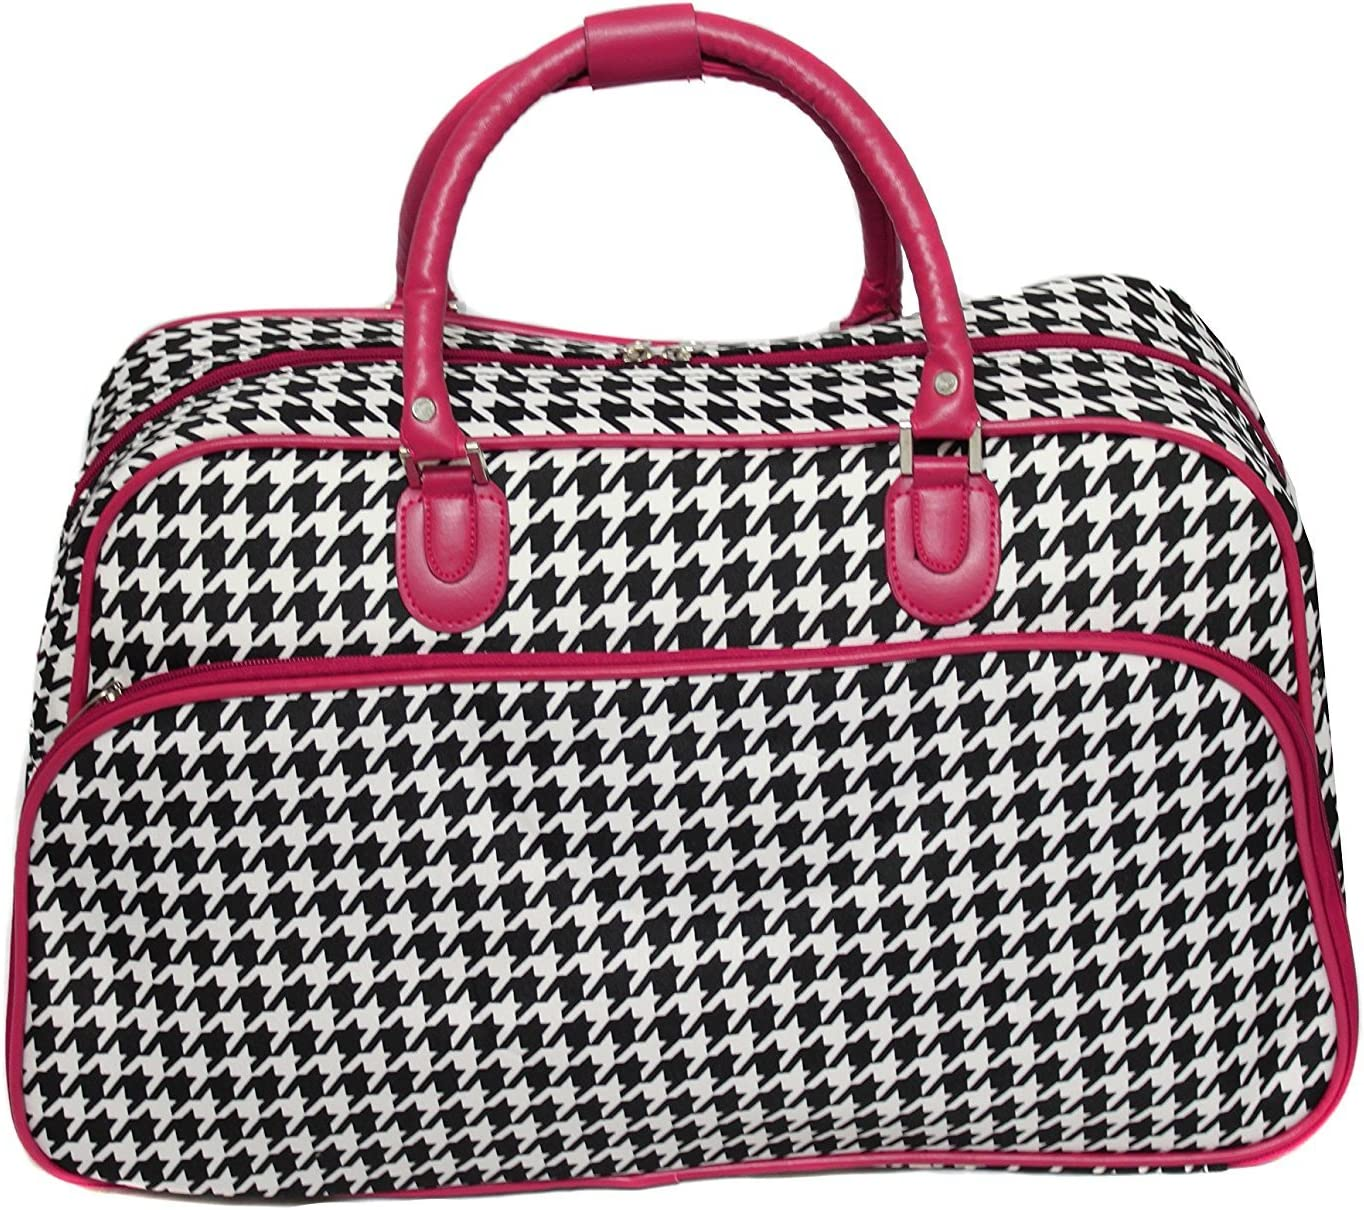 21 Pink Trim Lightweight Duffel Bag Polyester Foldable Houndstooth